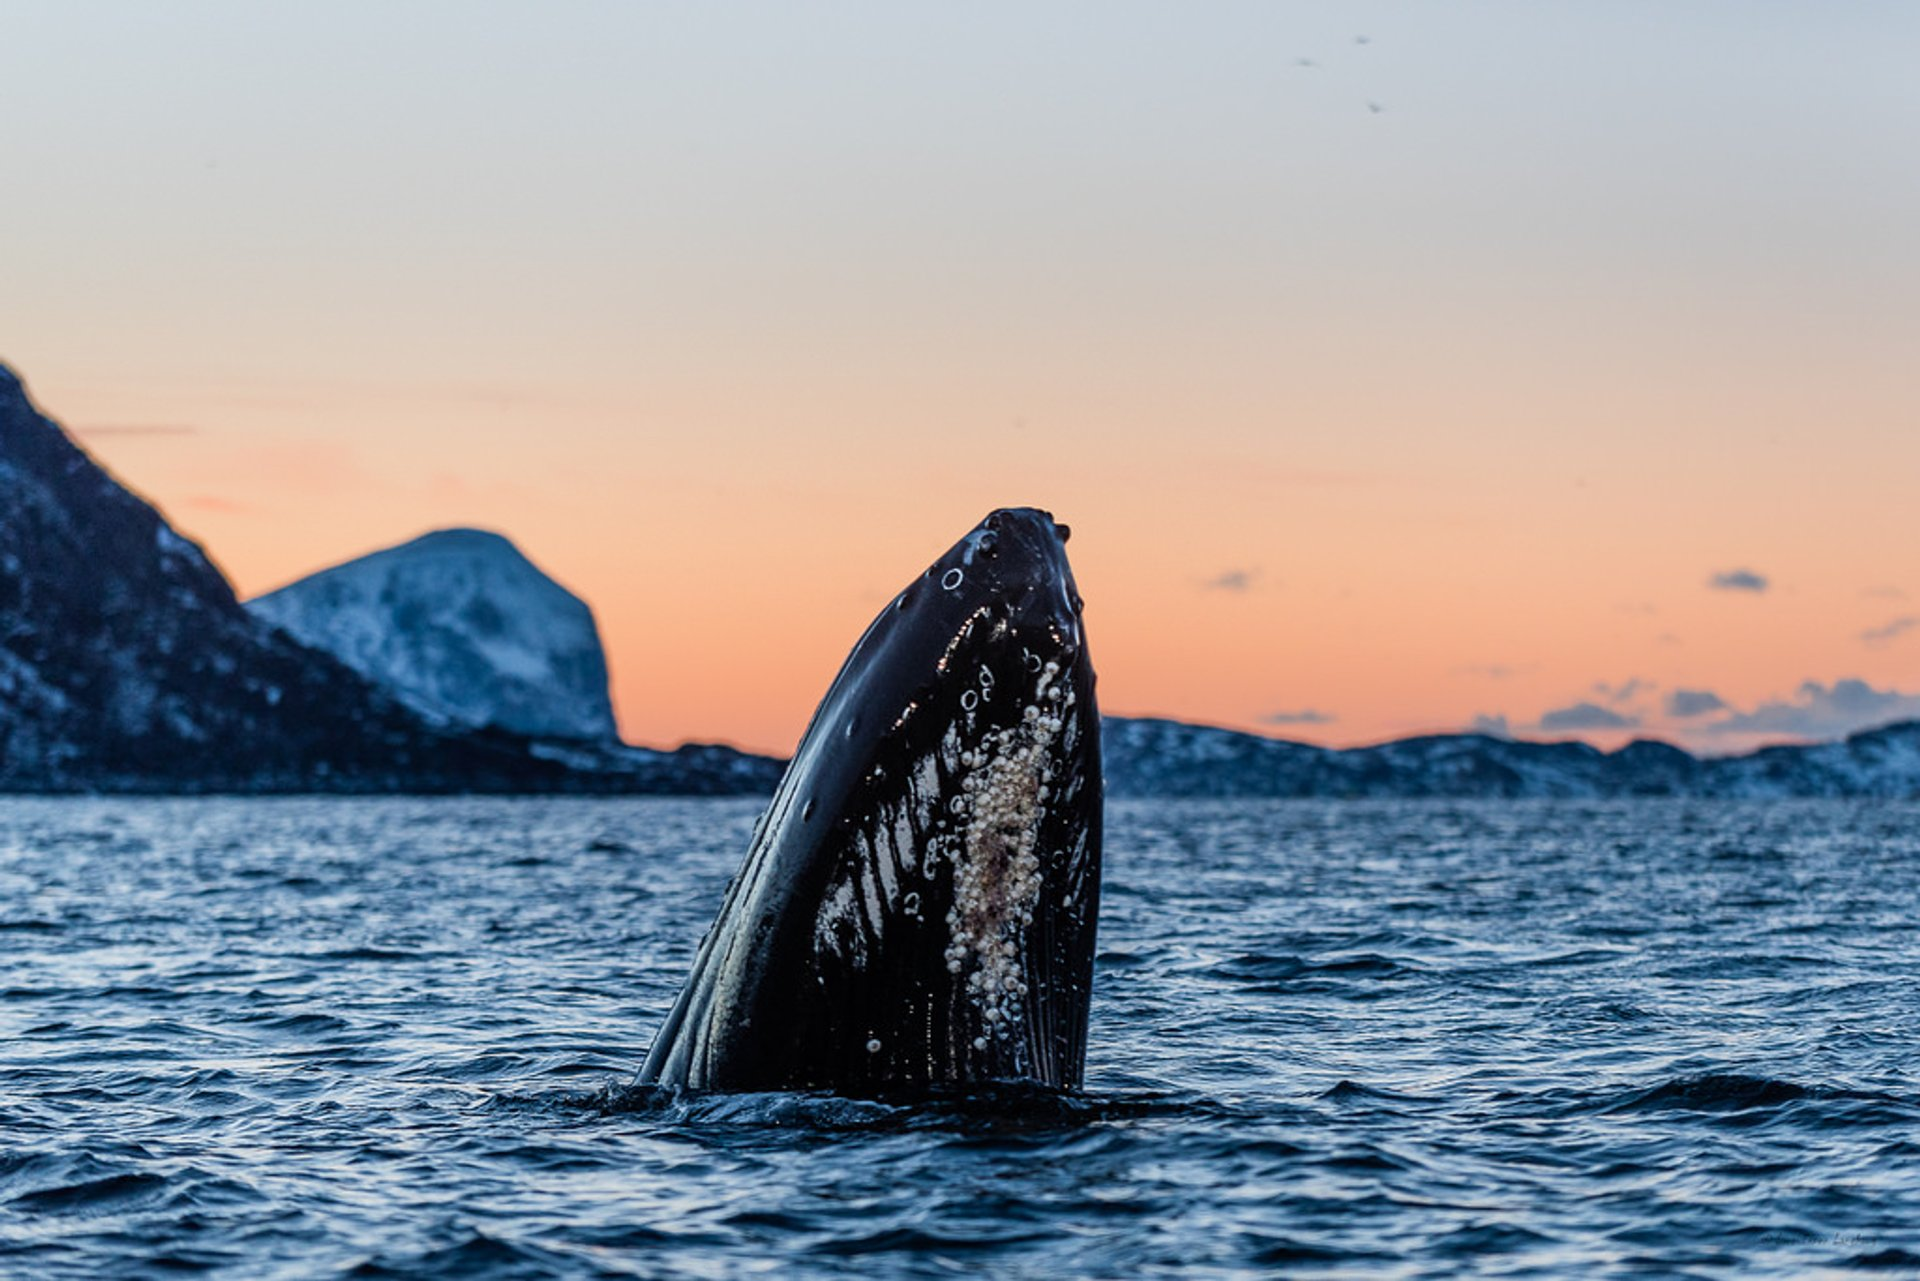 Whale Safari in Norway - Best Season 2020